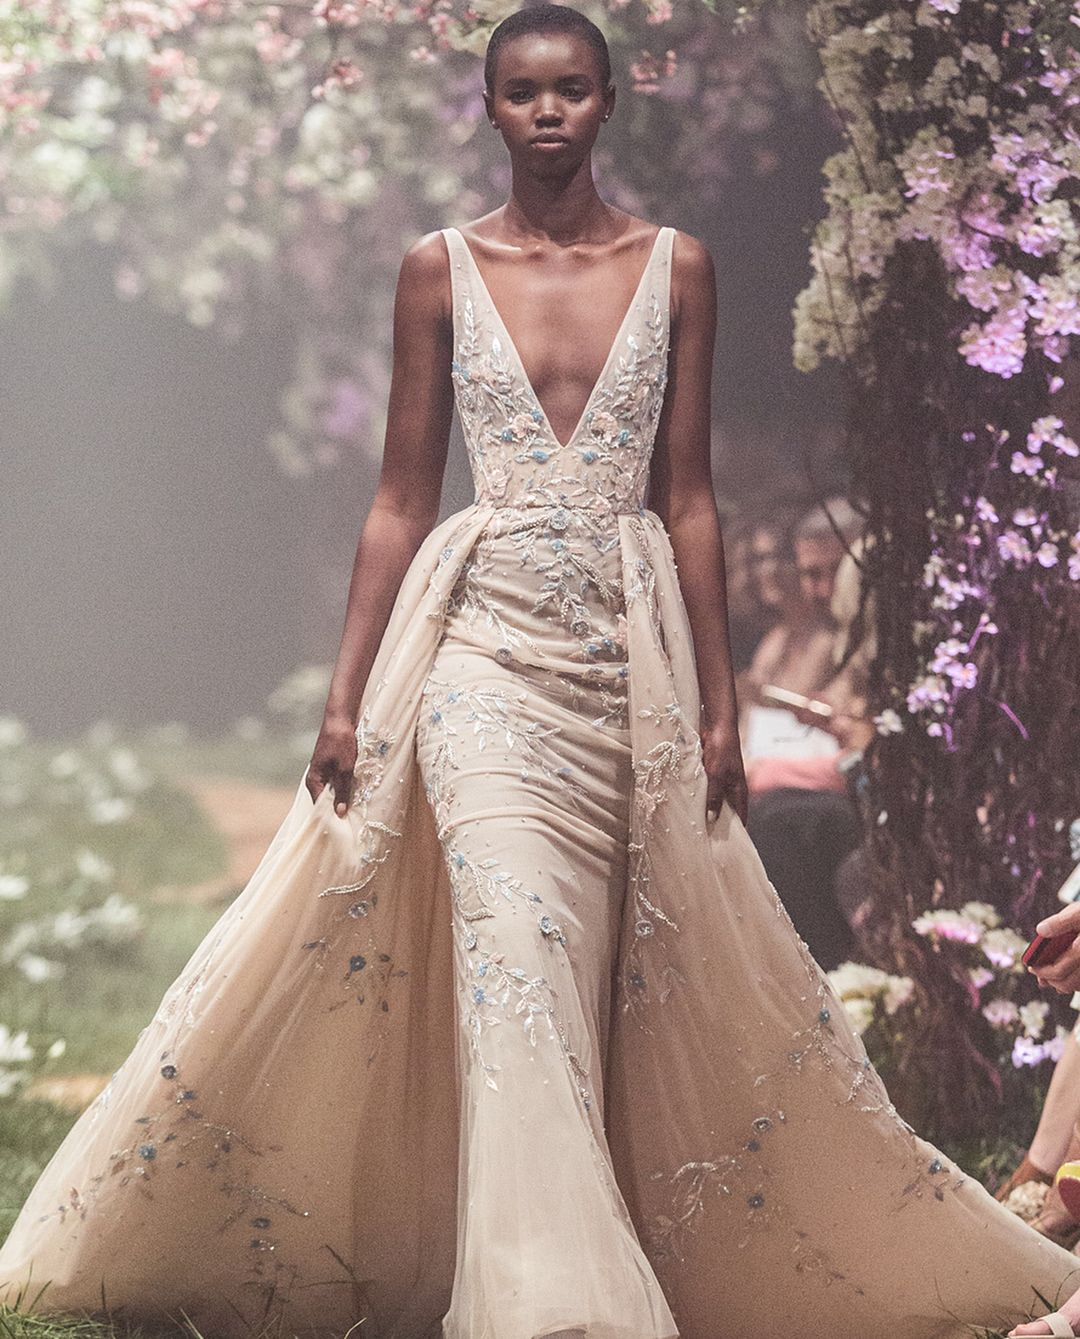 Samira wiley wedding dress  Dream Come True u Inspired by Cinderella the fishtail gown is